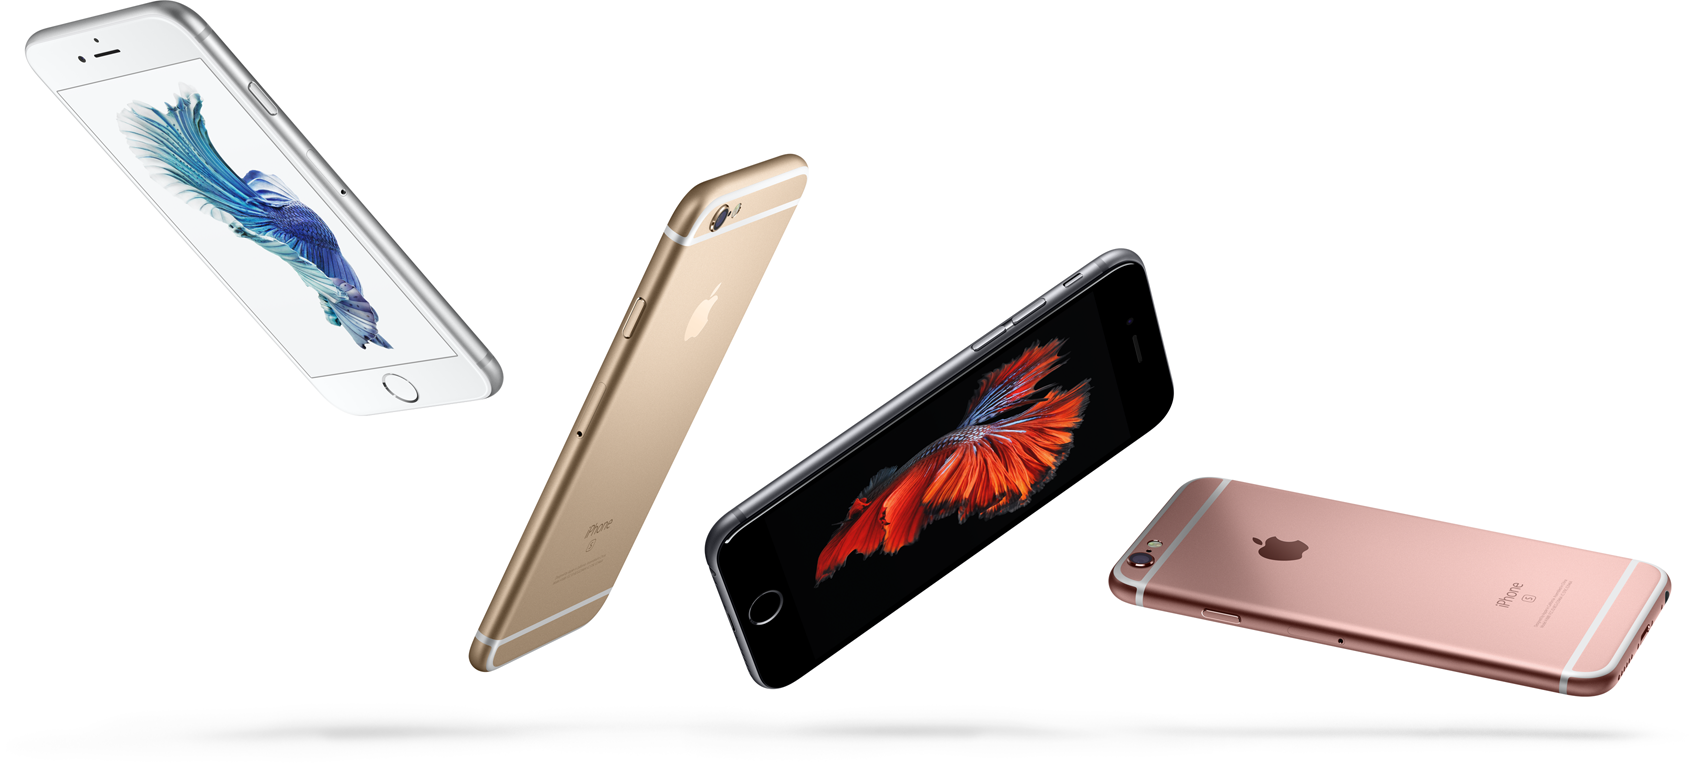 apple-iphone-6s-plus Apple: iPhone 6s und iPhone 6s Plus ab 12.09. vorbestellbar, ab 25.09. im Handel Apple iOS Gadgets Smartphones